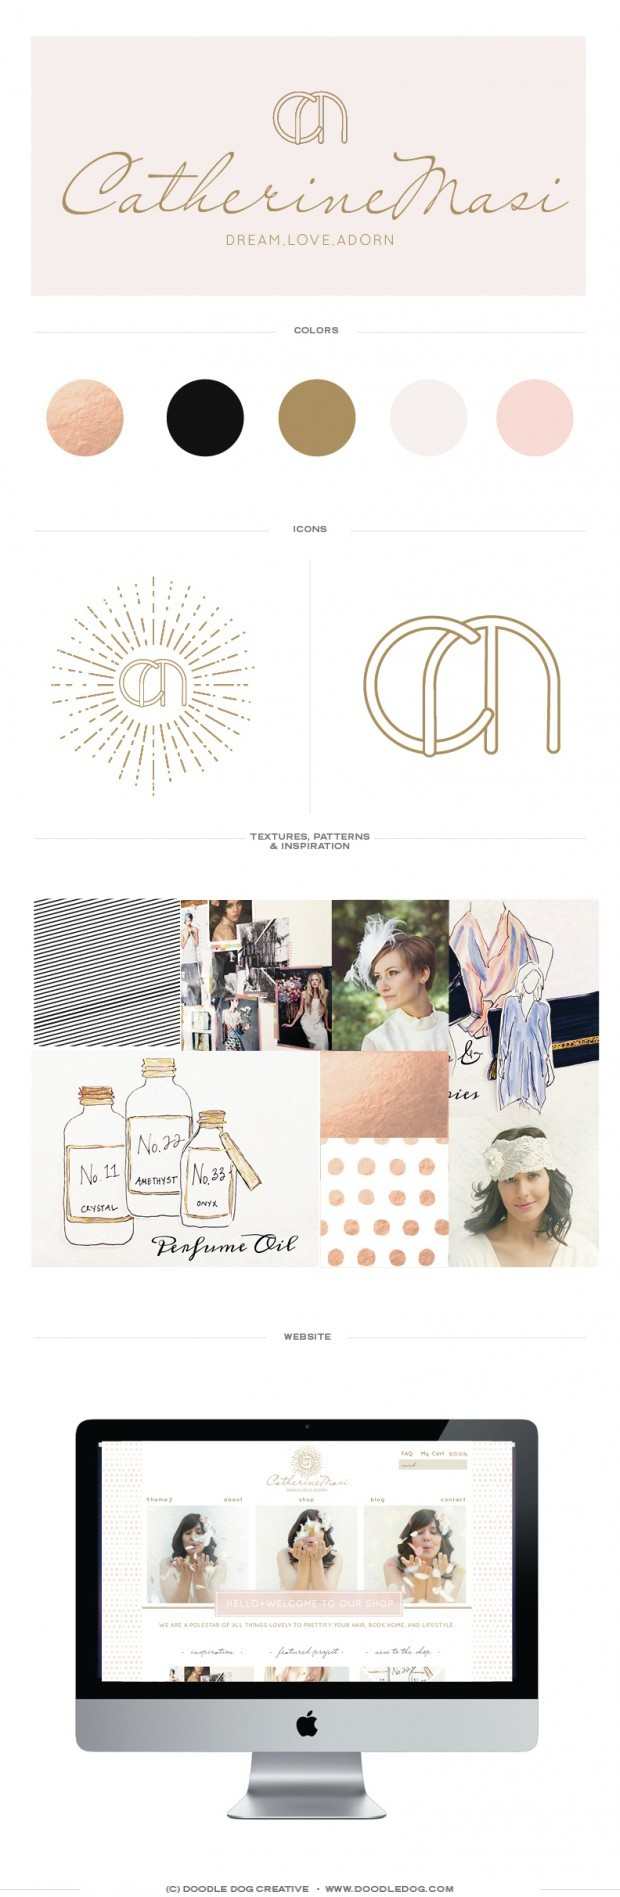 gold foil, brand identity, pretty brand, soft, romantic, high fashion brand identity, custom website design, wordpress website, ecommerce wordpress site, graphic designer